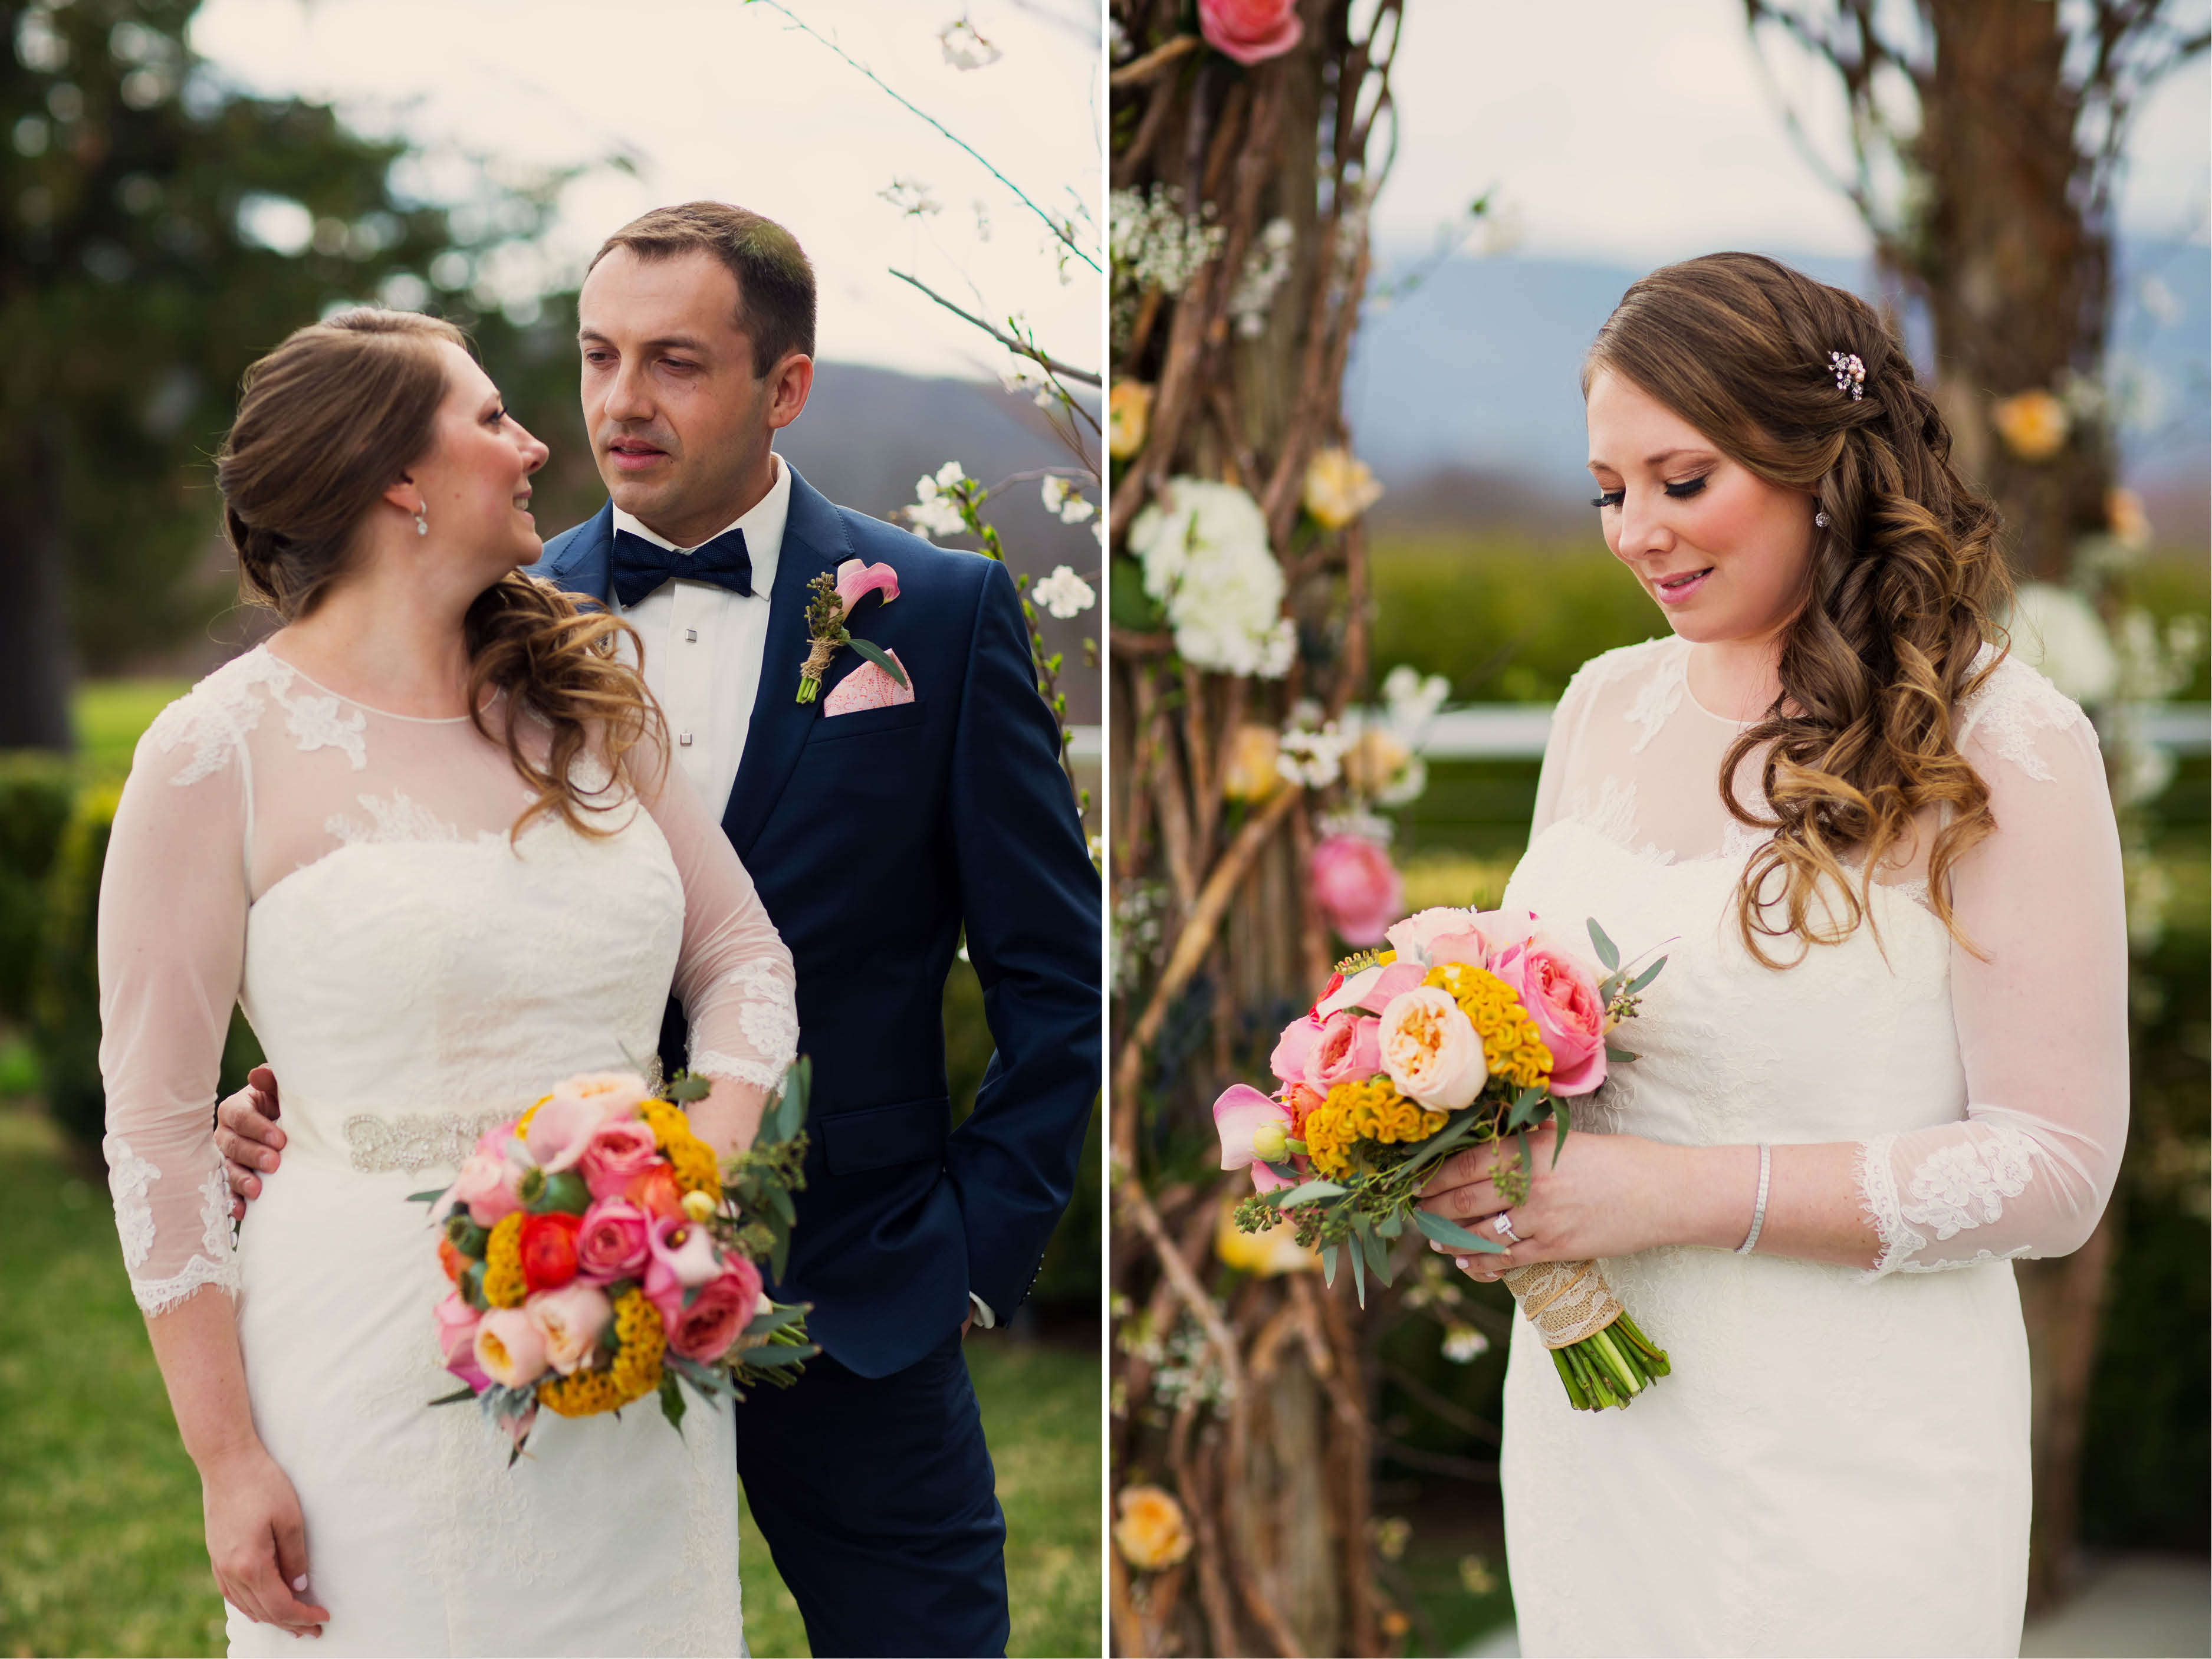 Emma_cleary_photography the Metropolitan Building wedding7